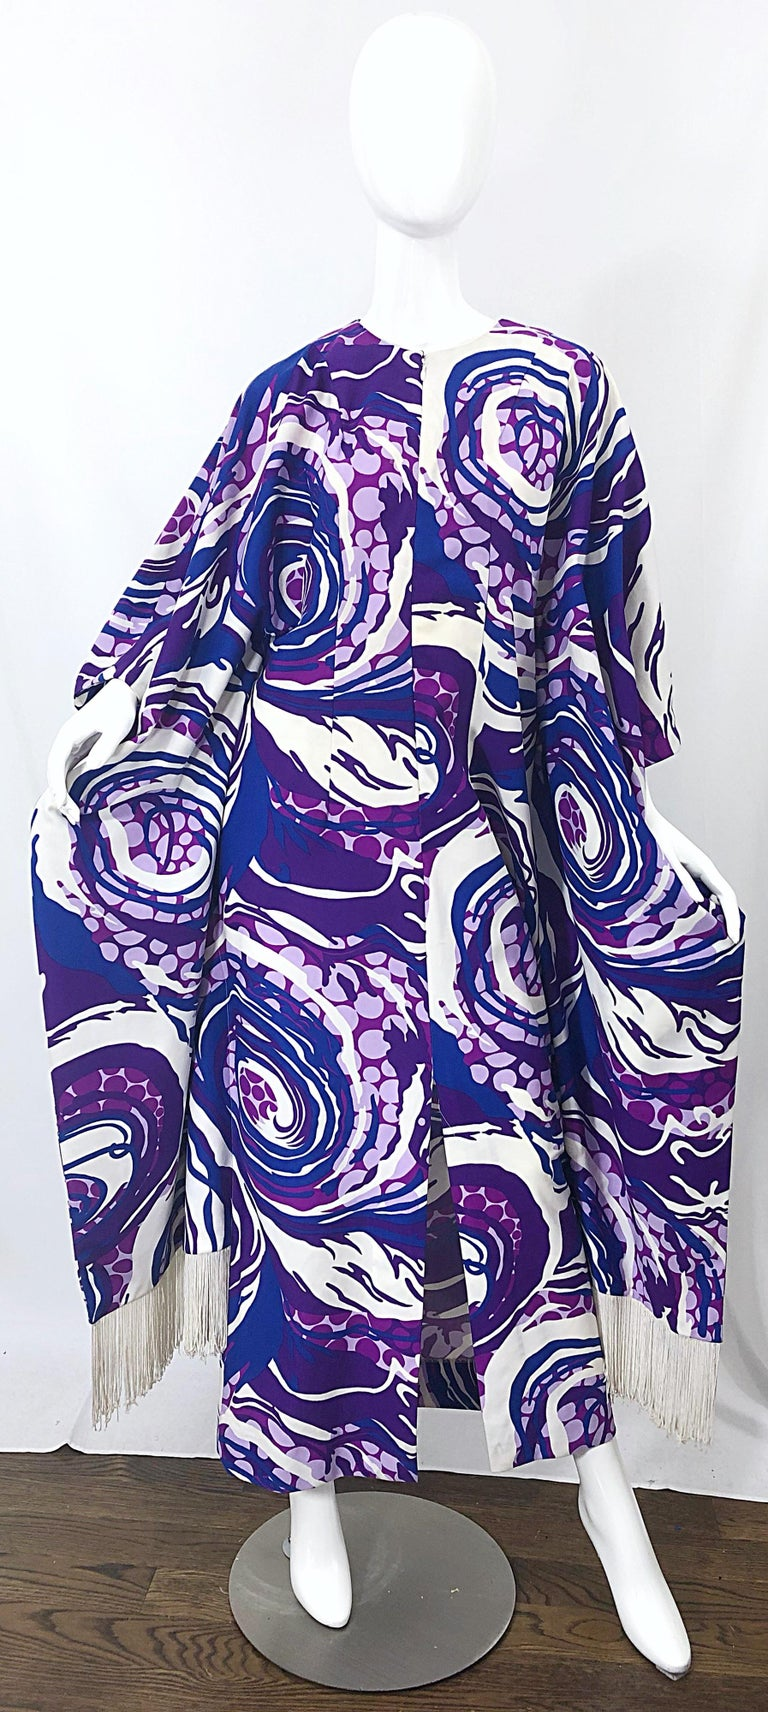 Amazing 1970s Fringed Purple and Blue Abstract Swirl Print Vintage 70s Caftan For Sale 3